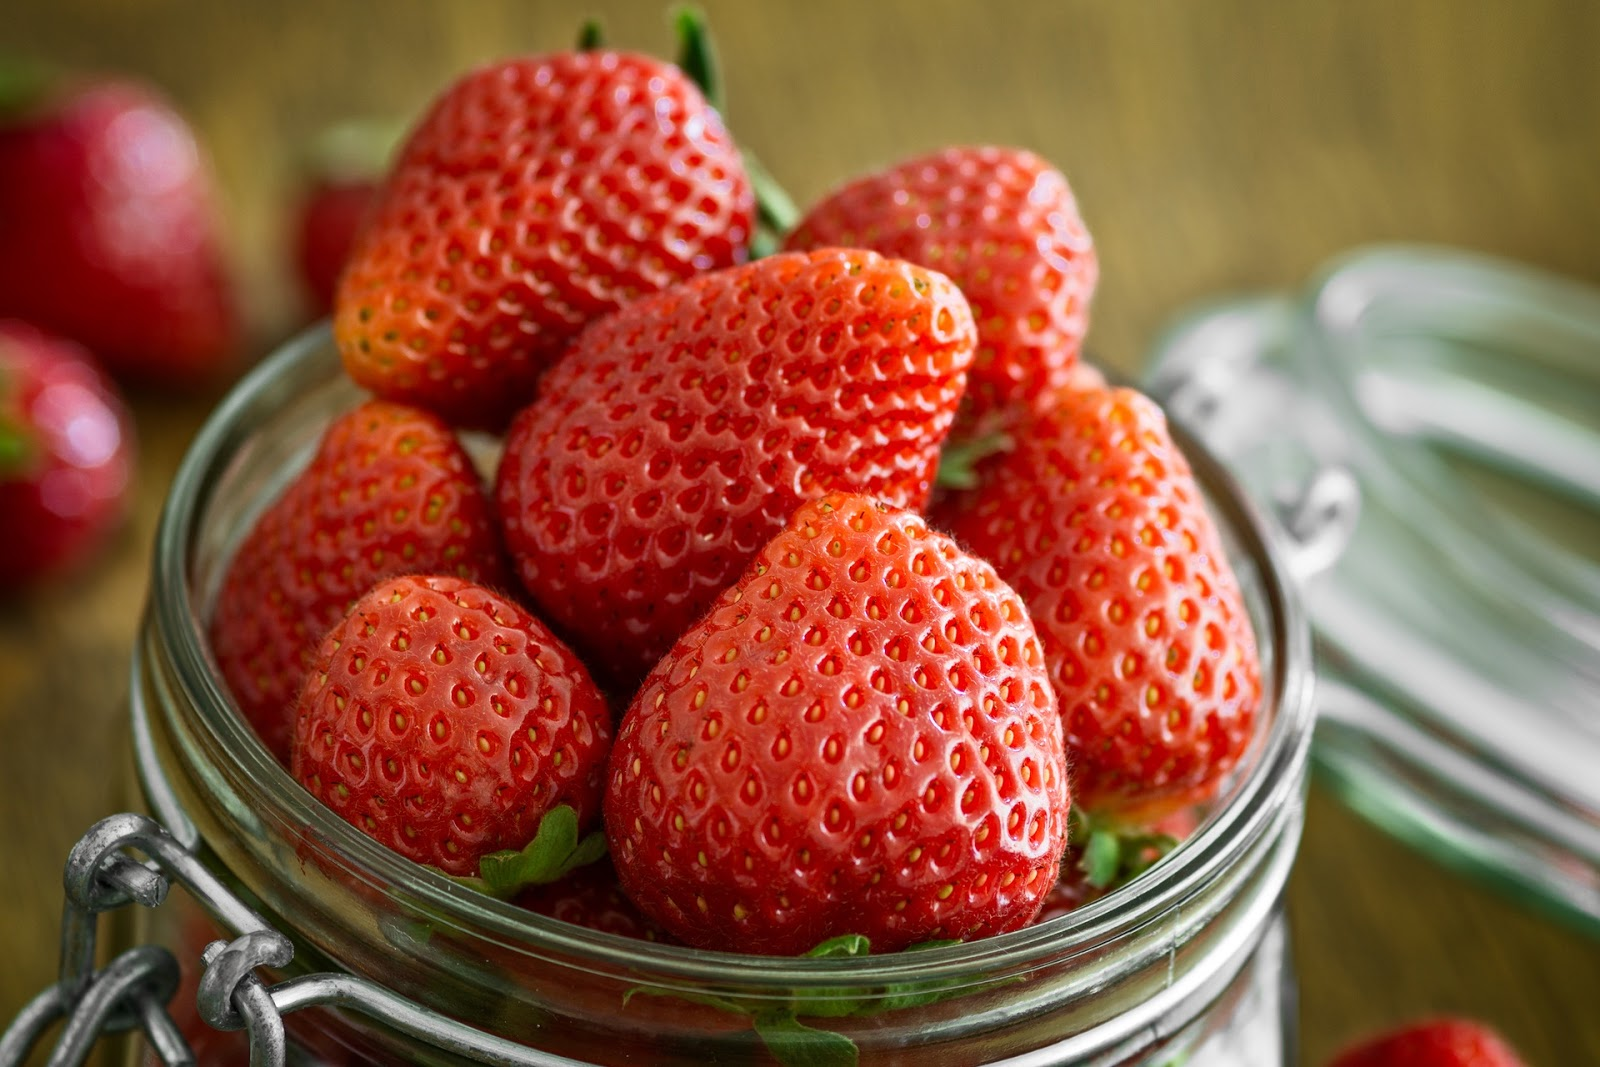 Strawberries in a kilner jar